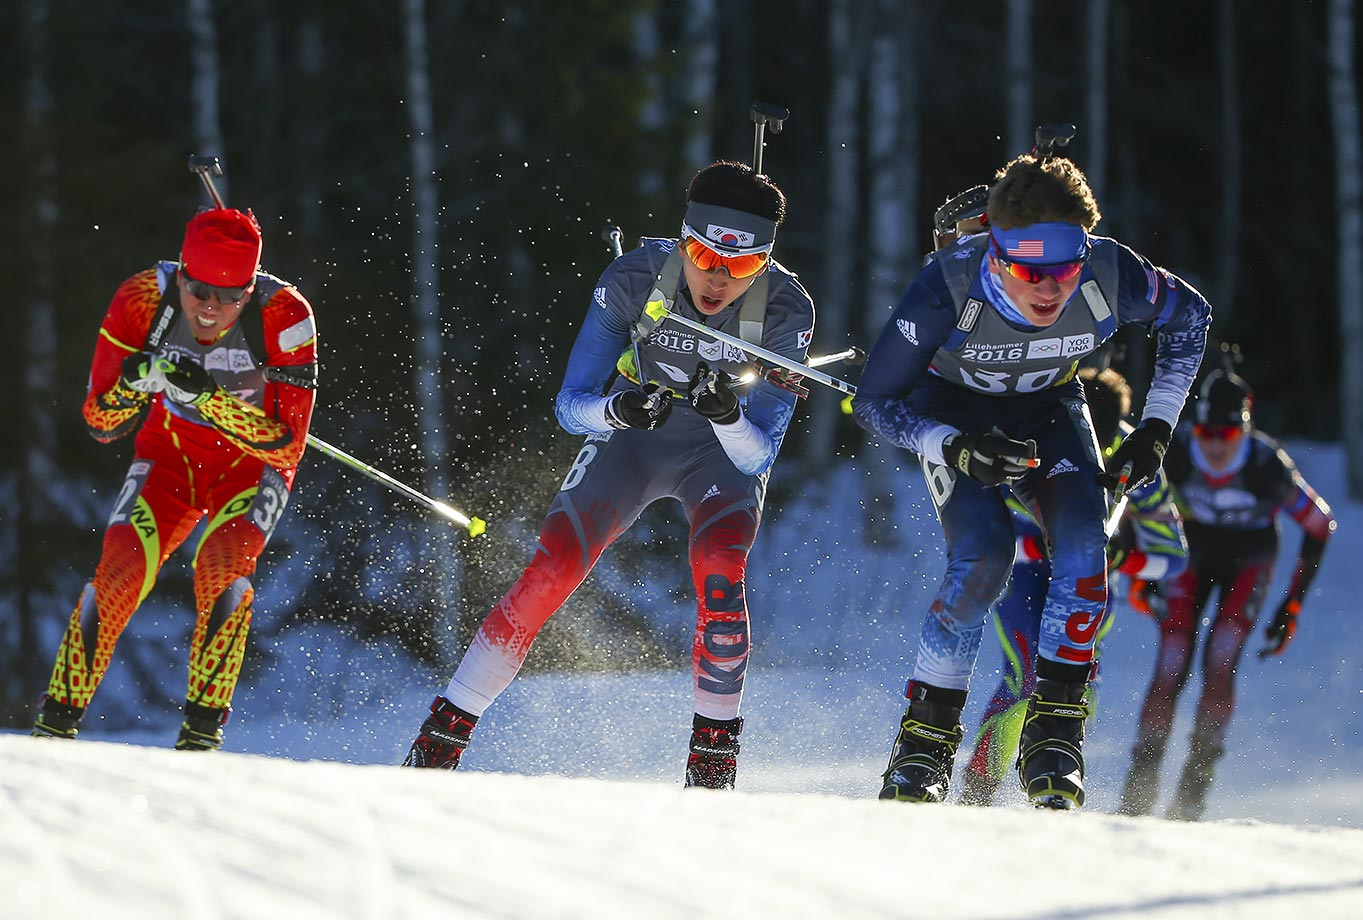 Zhenyu Zhu (CHN), Woojin Wang (KOR) and Vaclav Cervenka (USA) compete in the Biathlon Men's 10km Pursuit at Birkebeineren Biathlon Stadium on Feb. 15, 2016 during the Winter Youth Olympic Games in Lillehammer, Norway.